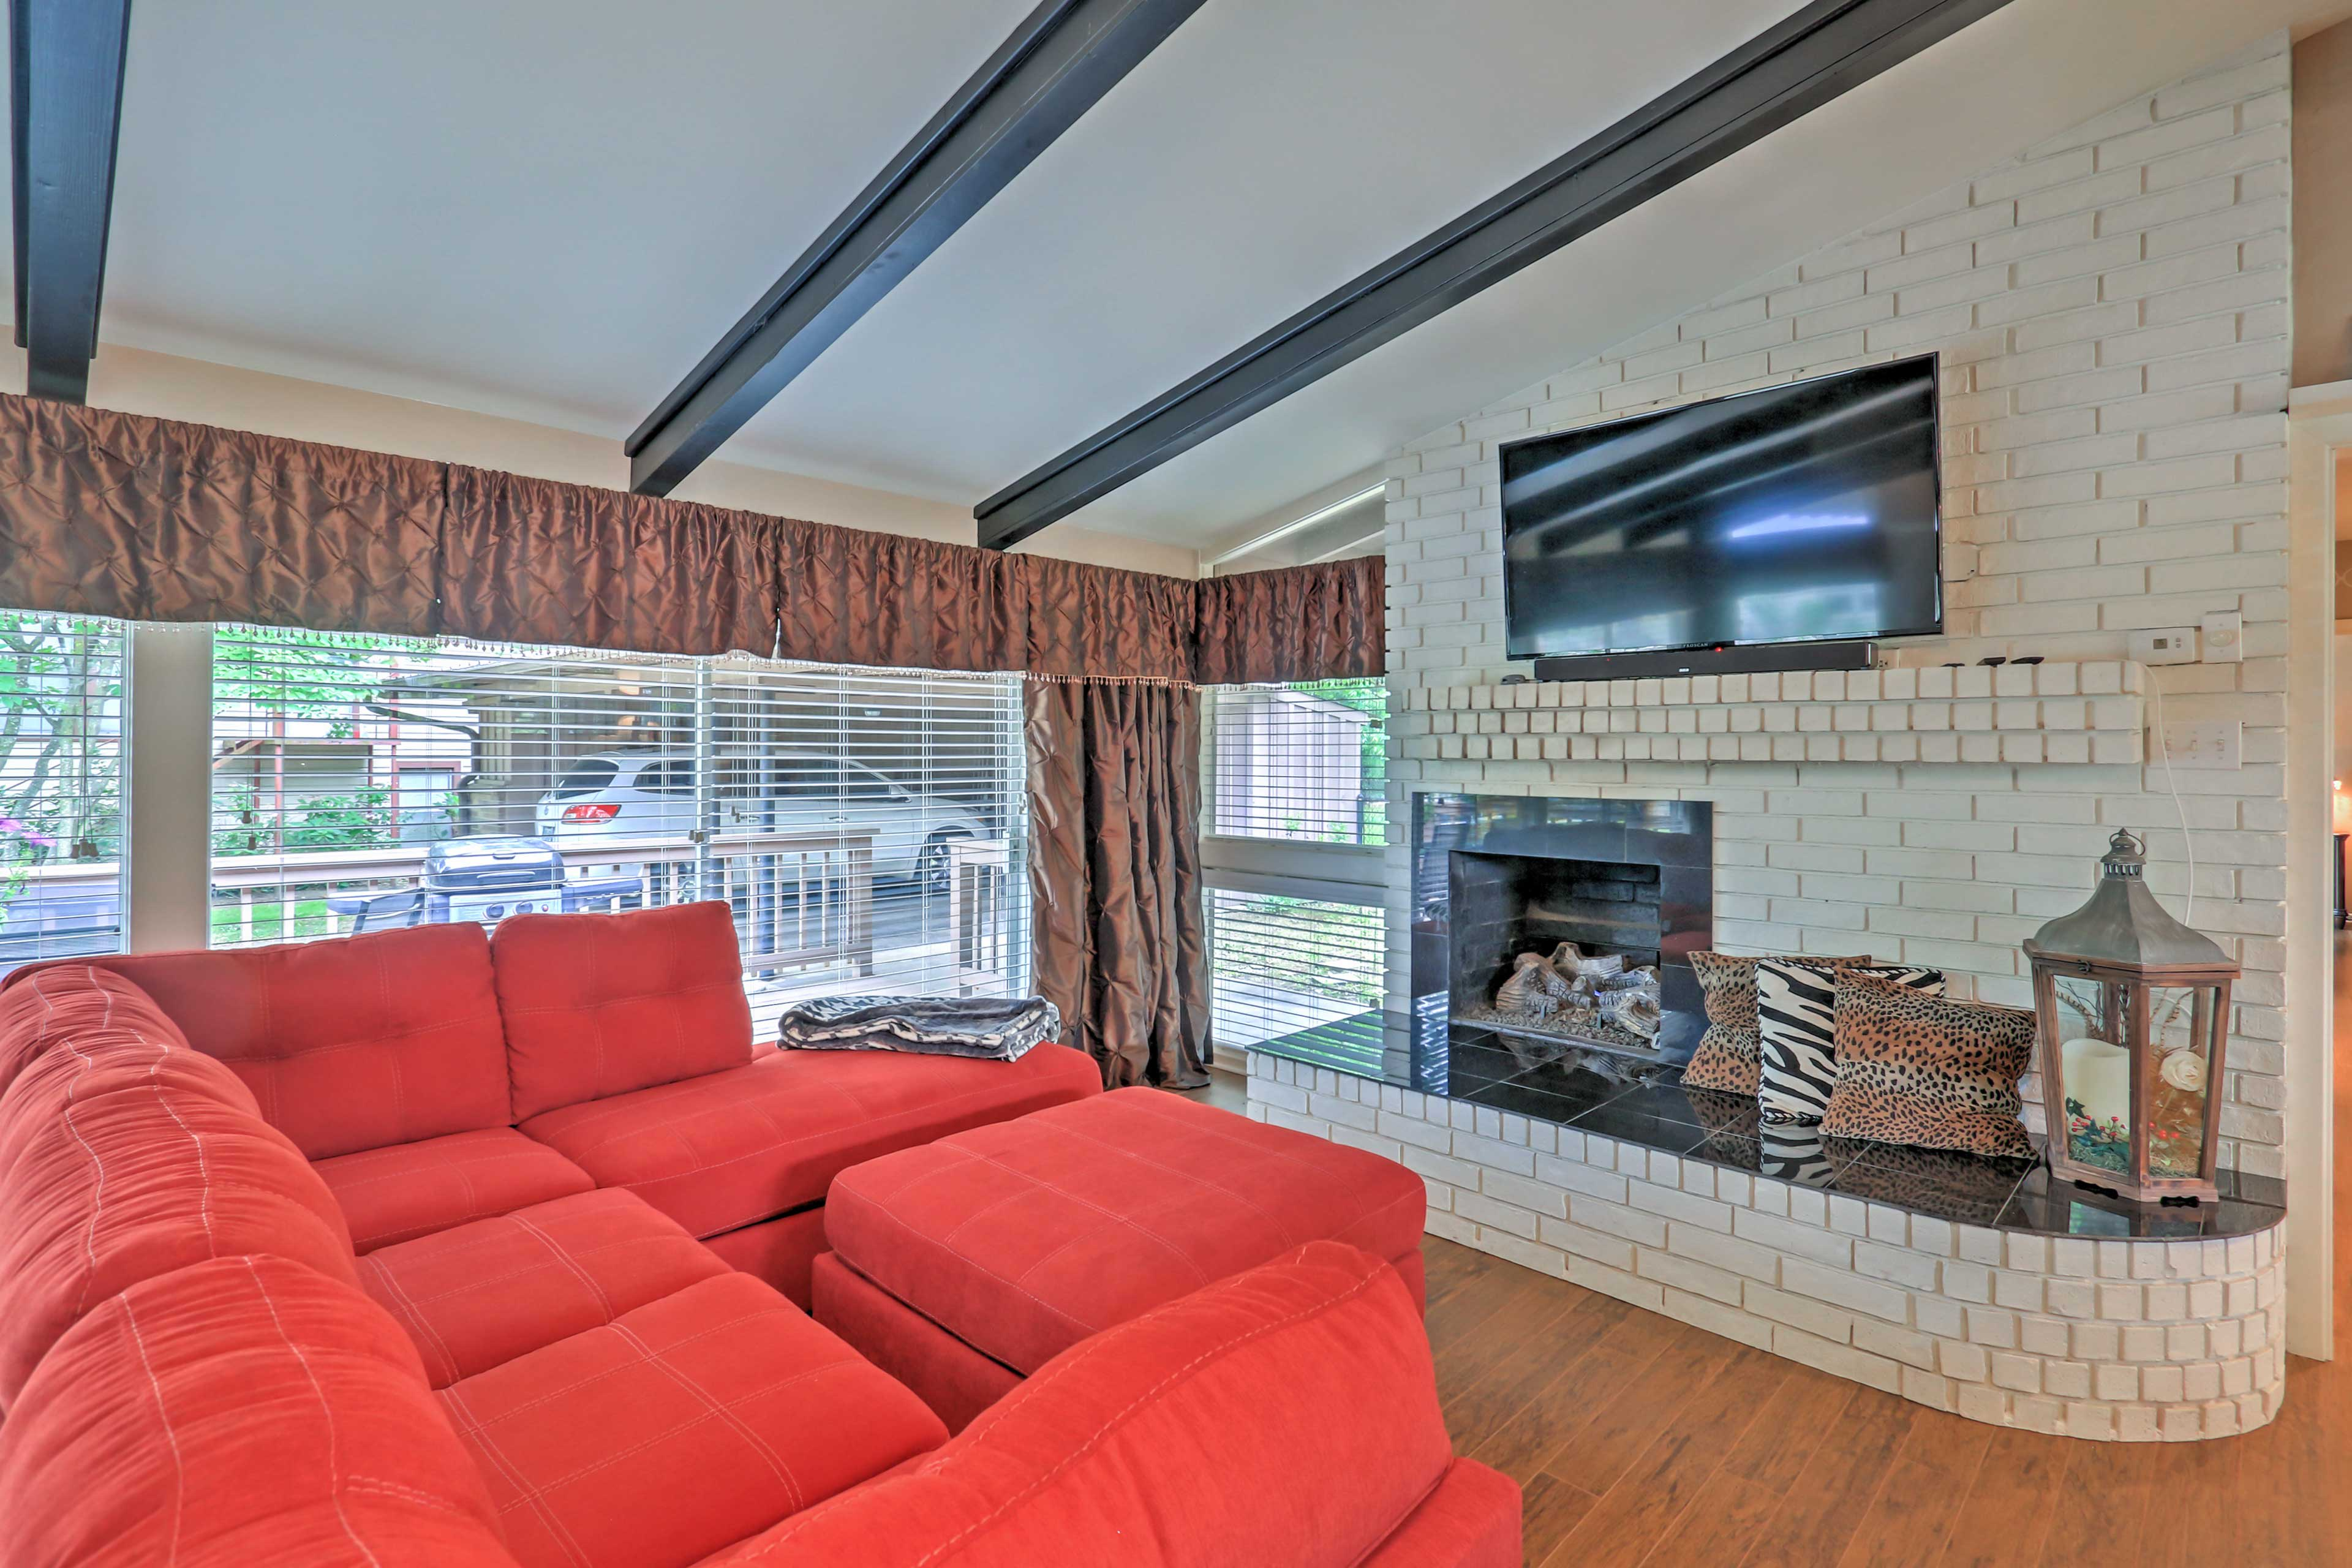 The open living room includes a large sectional couch and a gas log fireplace.